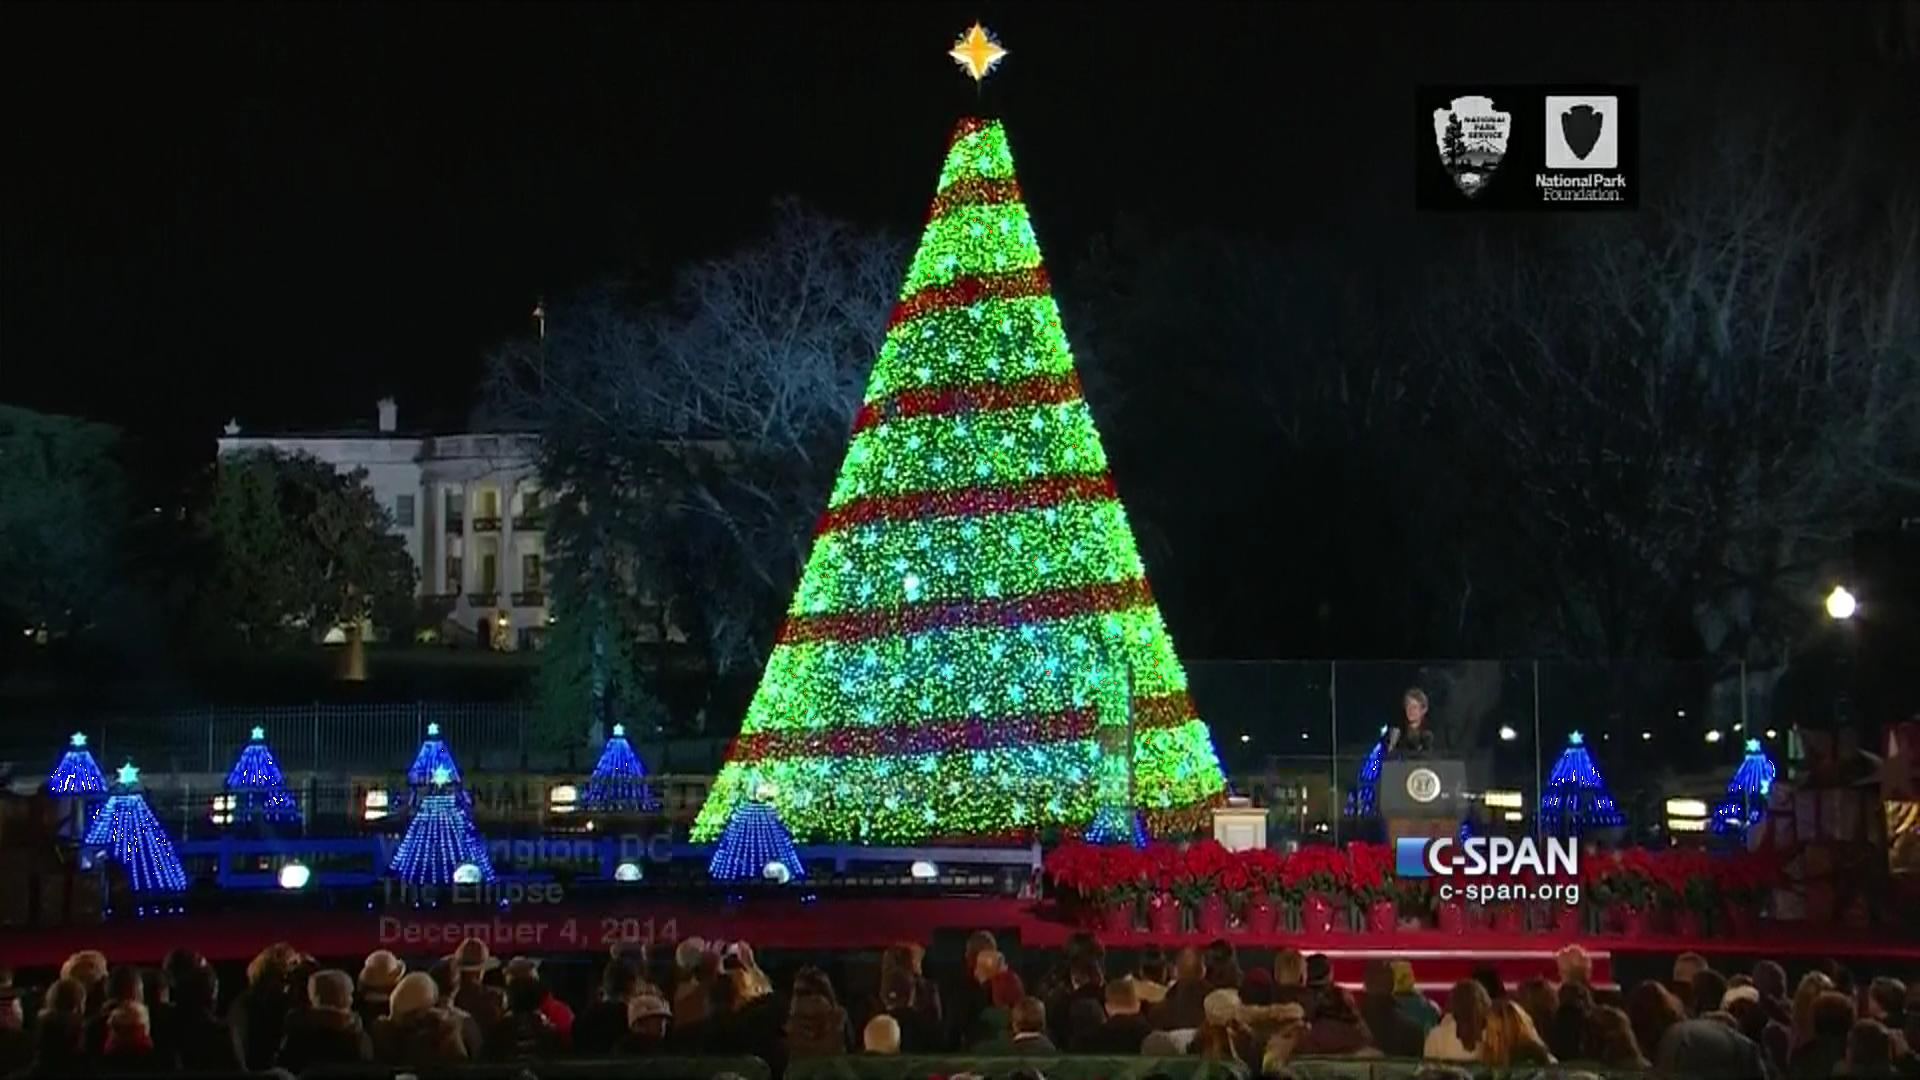 National Christmas Tree Lighting, Dec 4 2014 | Video | C-SPAN.org